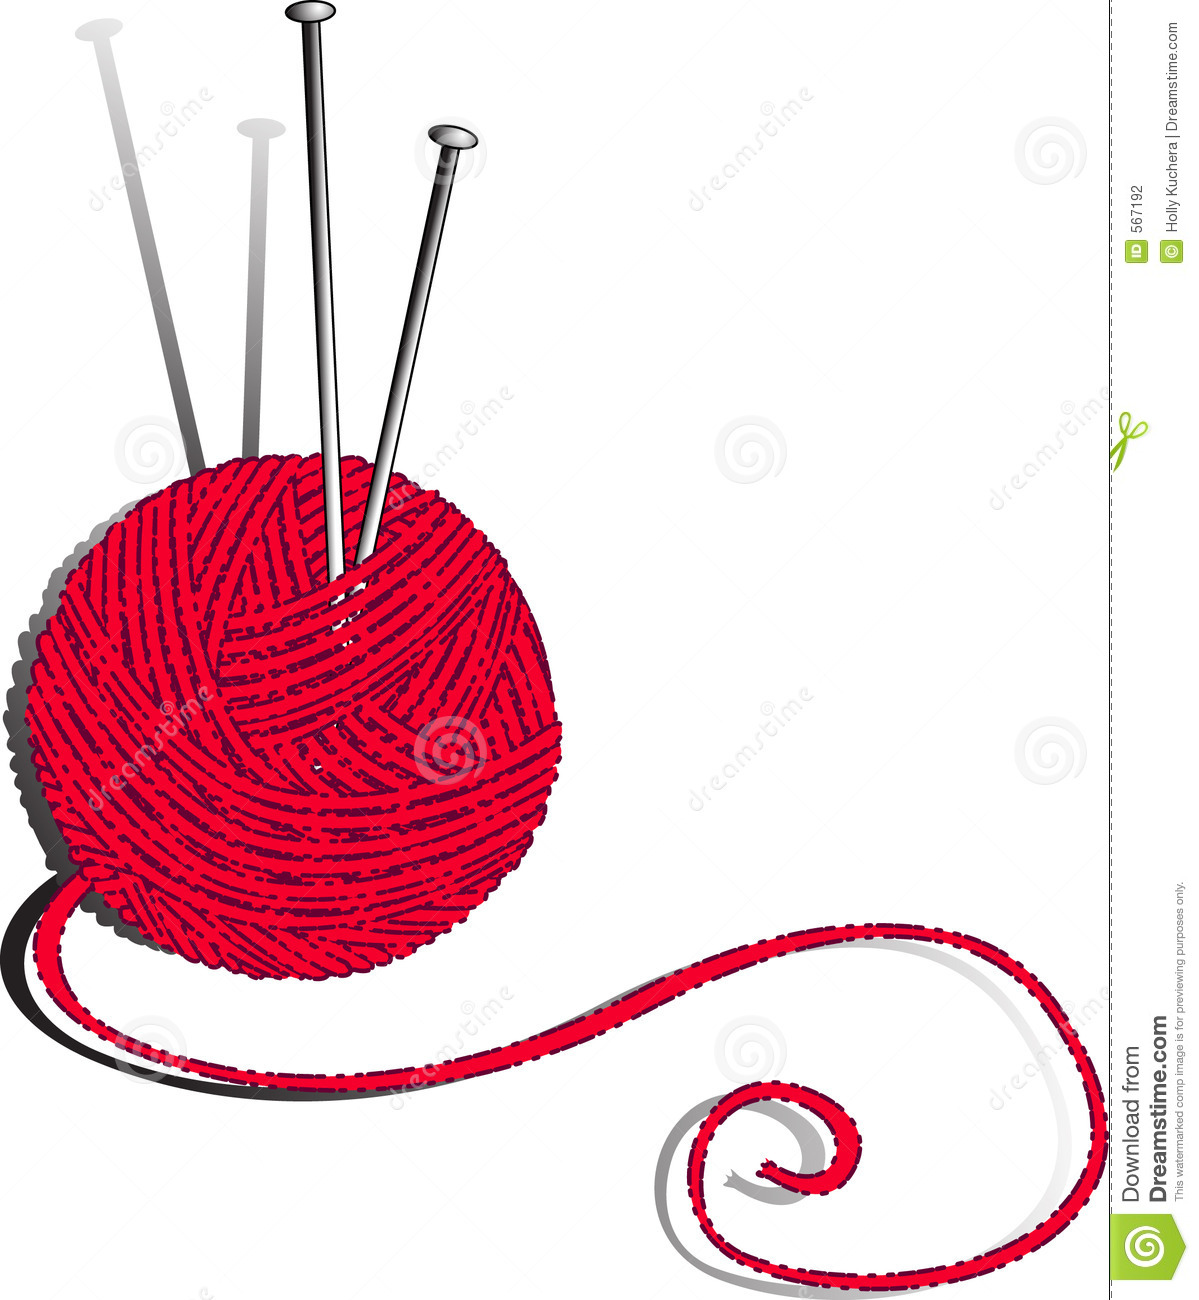 Knitting Needles Clip Art : Crochet needle clipart suggest